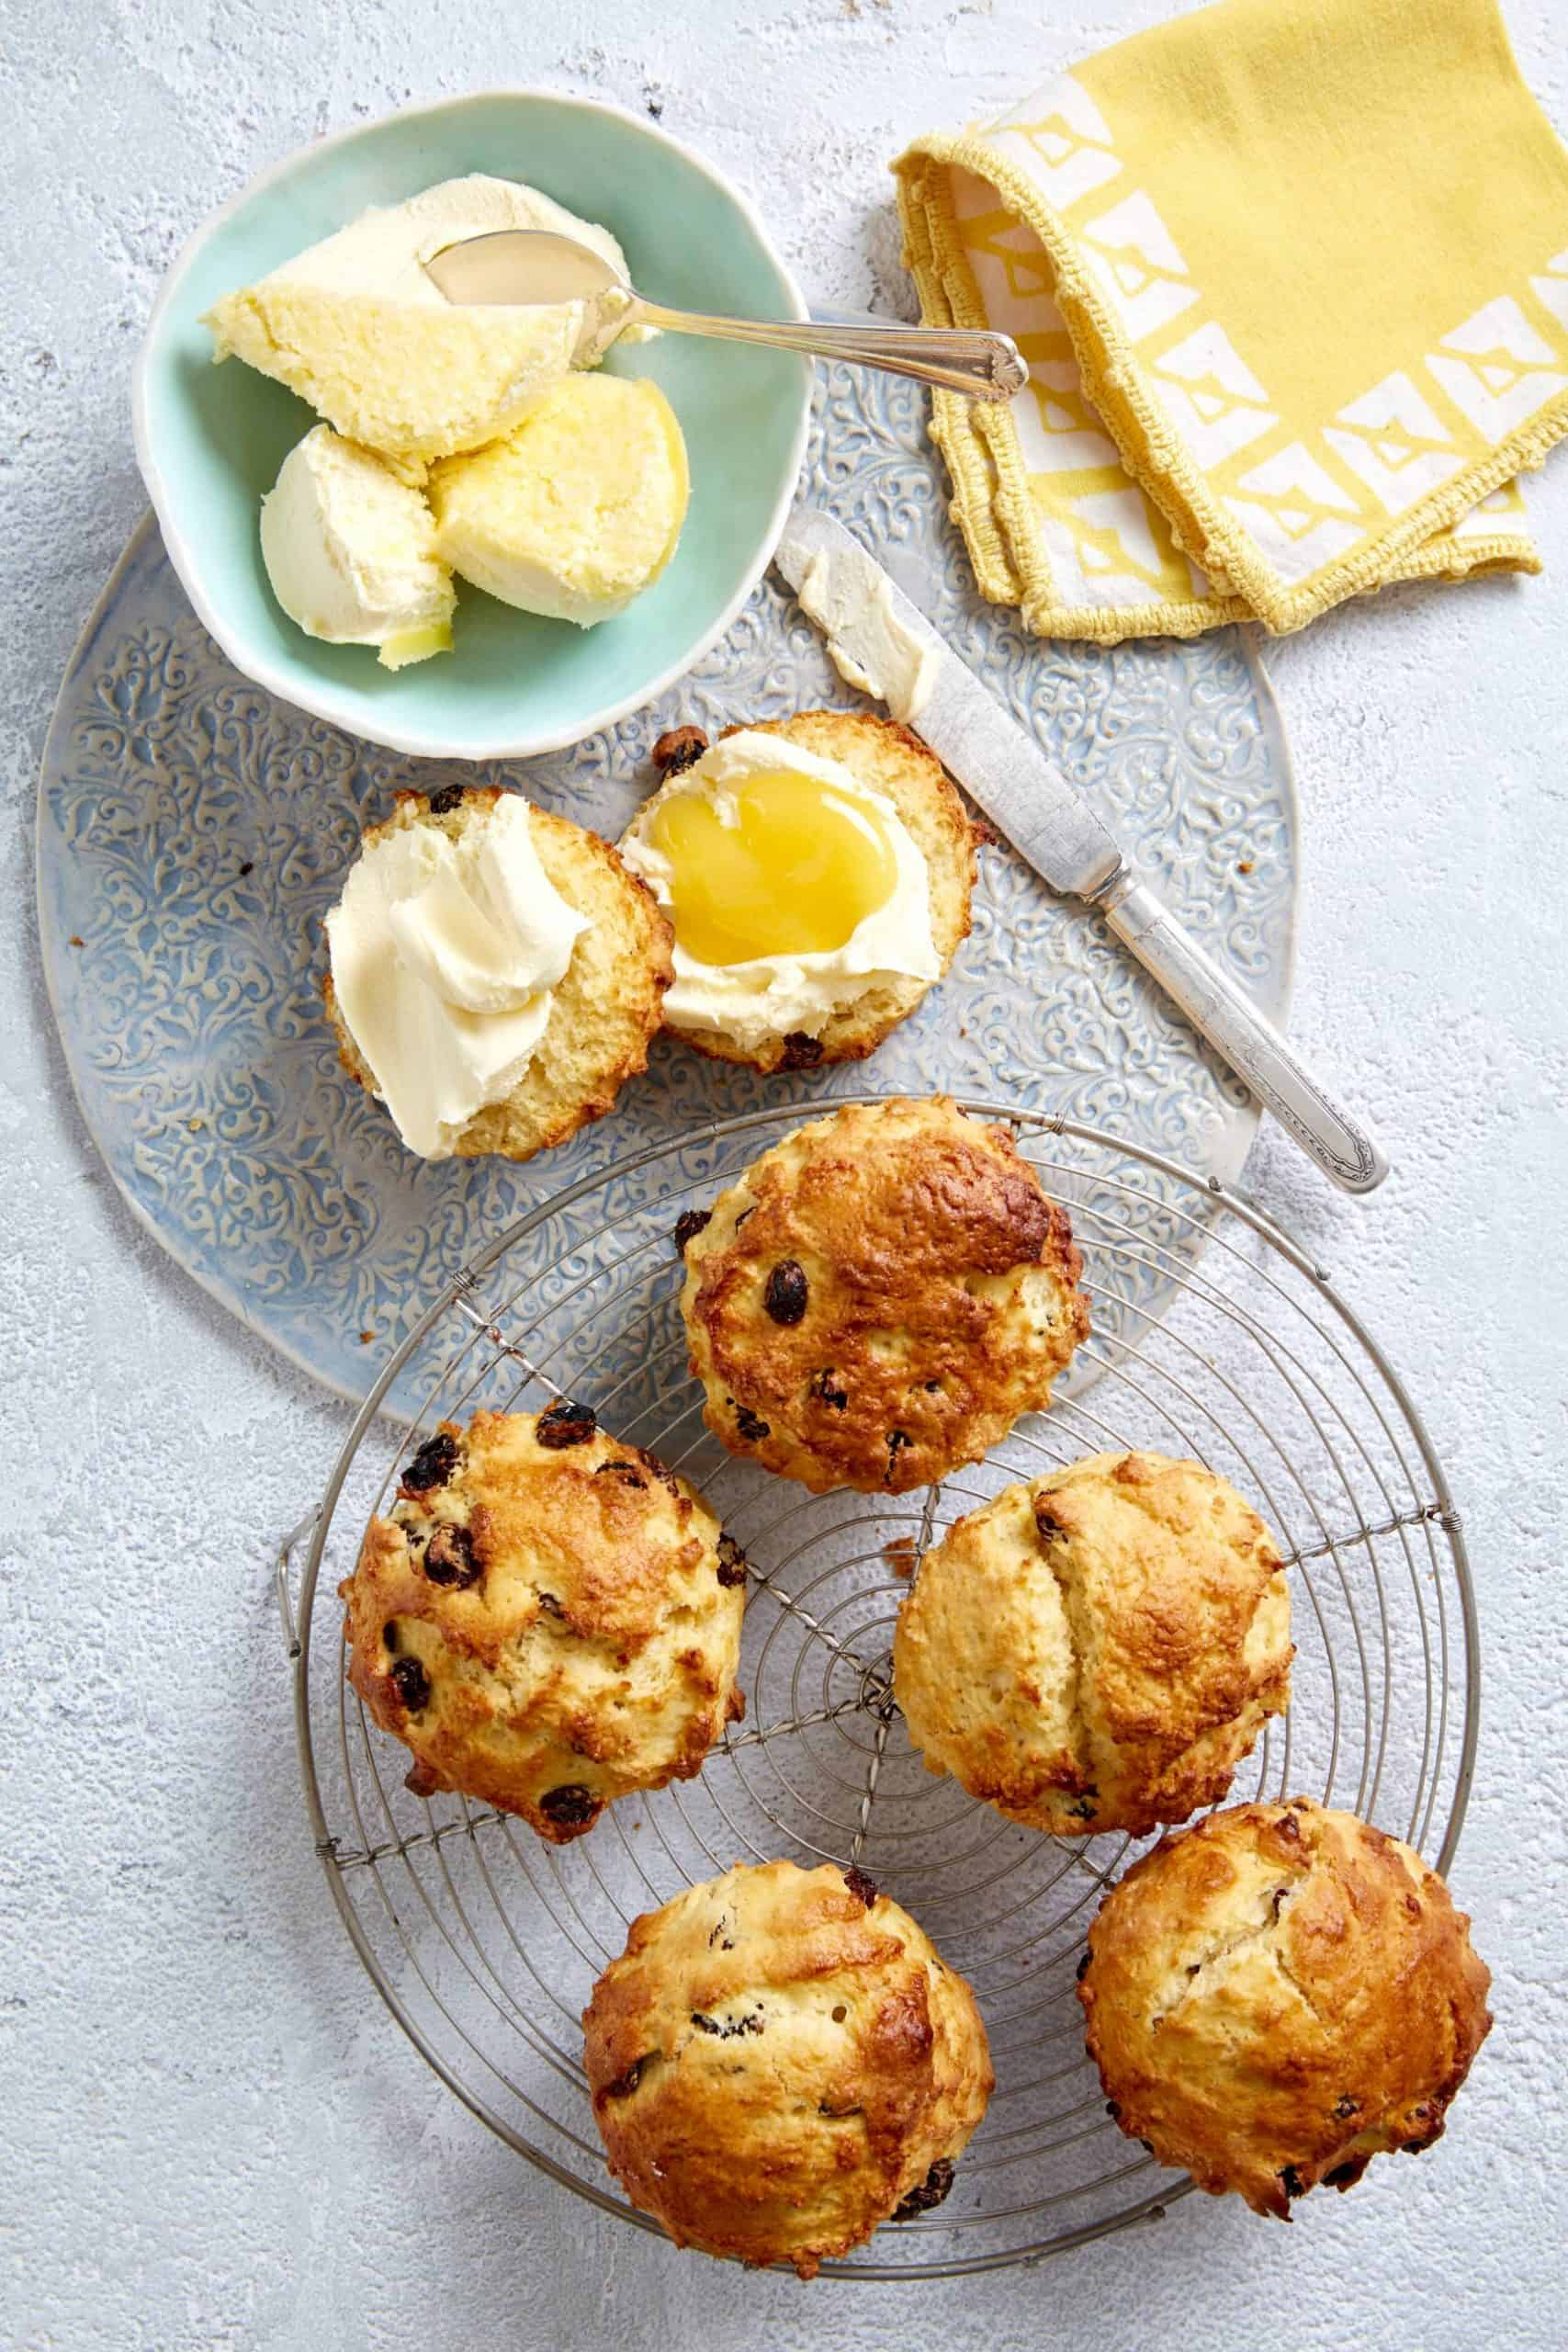 Raisin and Lemon Scones, lemon scones